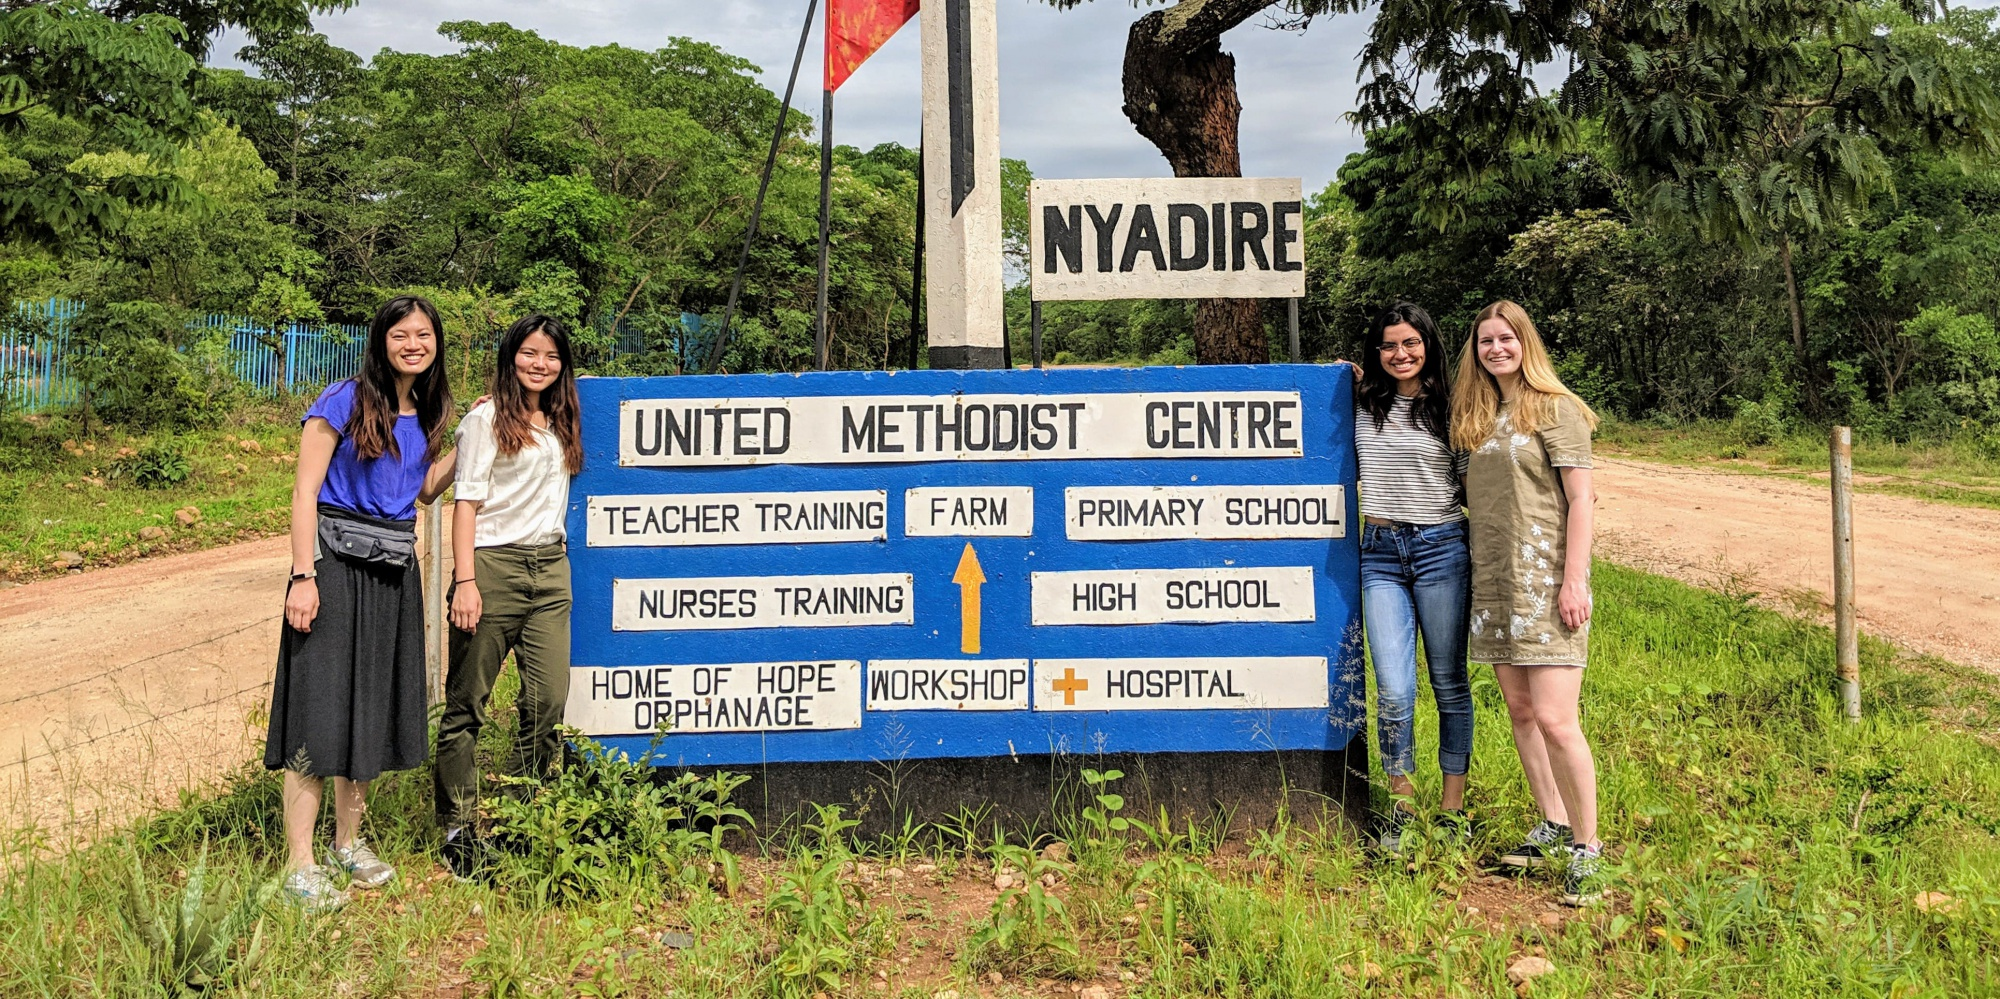 Group of students in front of a sign in Nyadire Zimbabwe